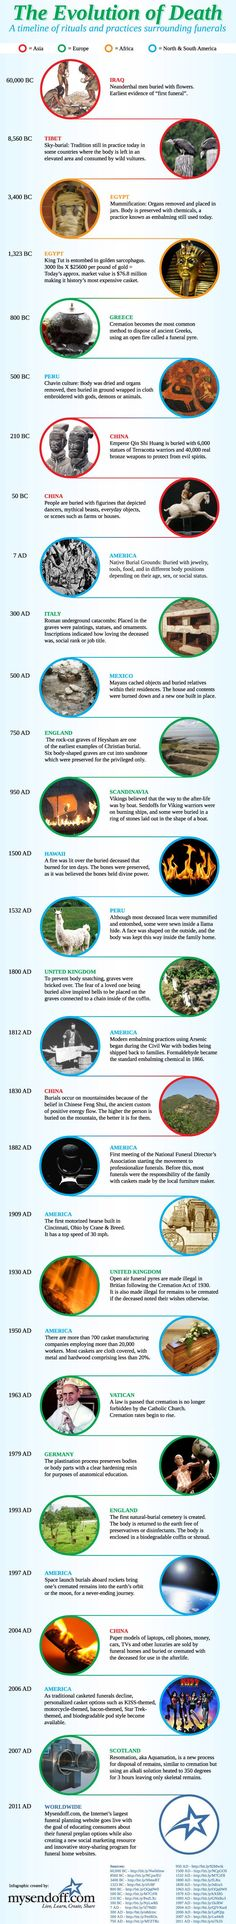 Evolution of Funerals - Infographic A graphical history of the evolution of death rituals throughout human history.A graphical history of the evolution of death rituals throughout human history. Evolution, End Of Life, World History, Nasa History, History Facts, Ancient History, Archaeology, Six Feet Under, American History